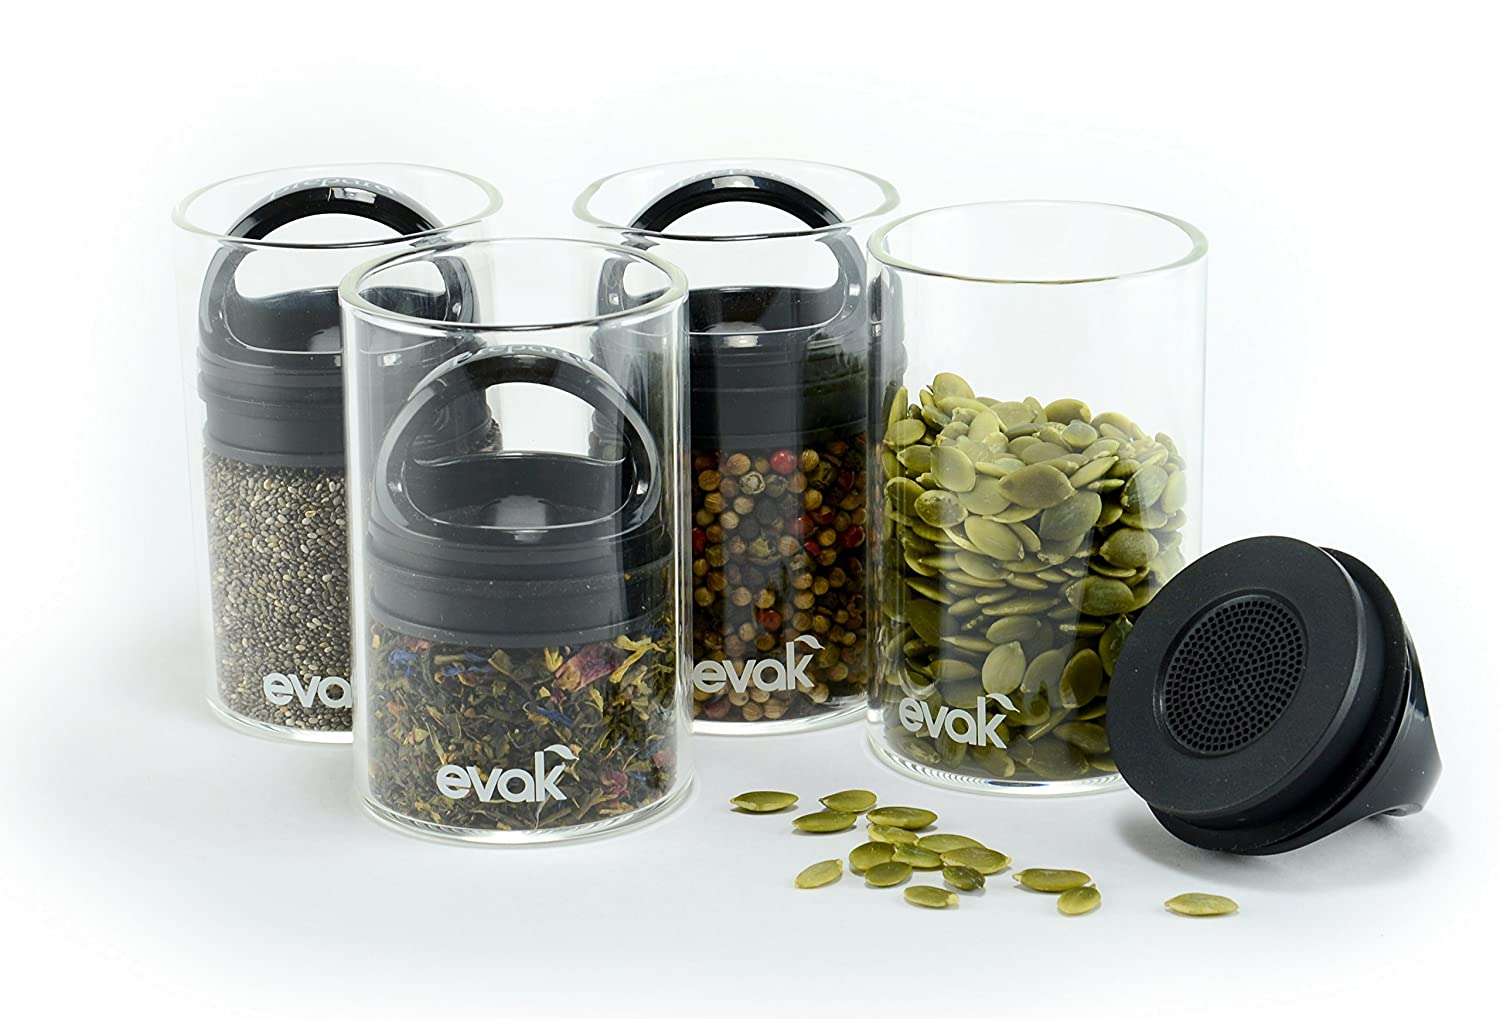 SET OF 4 EVAK MINI- Best PREMIUM Airtight Storage Container for Coffee Beans, Tea and Dry Goods - EVAK - Innovation that Works by Prepara, Glass and Stainless, Compact Handle, Mini (Black Gloss)